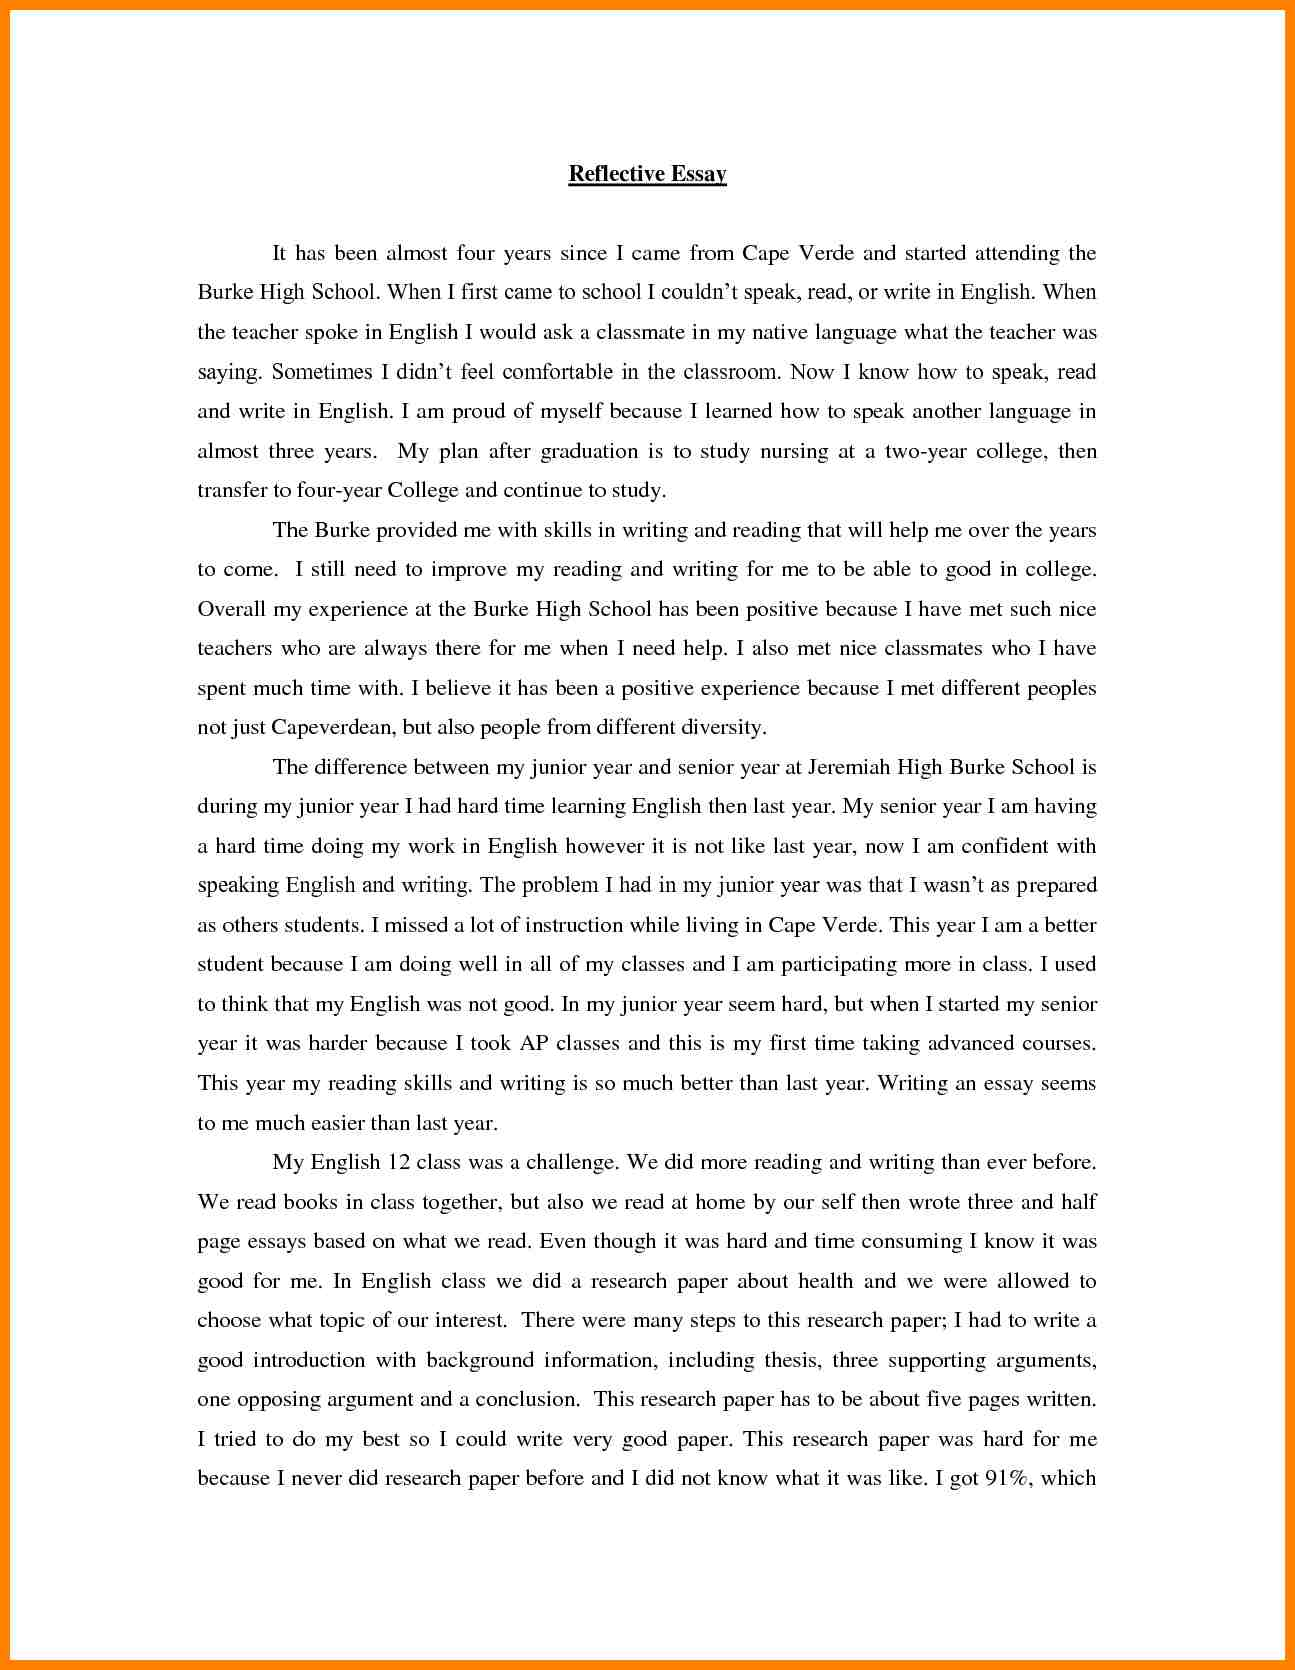 003 Essay Example Speak Brilliant Ideas Of Writing Reflection Printable Bill Lading Short Form Rf English Wonderful Conclusion Thesis Titles Full